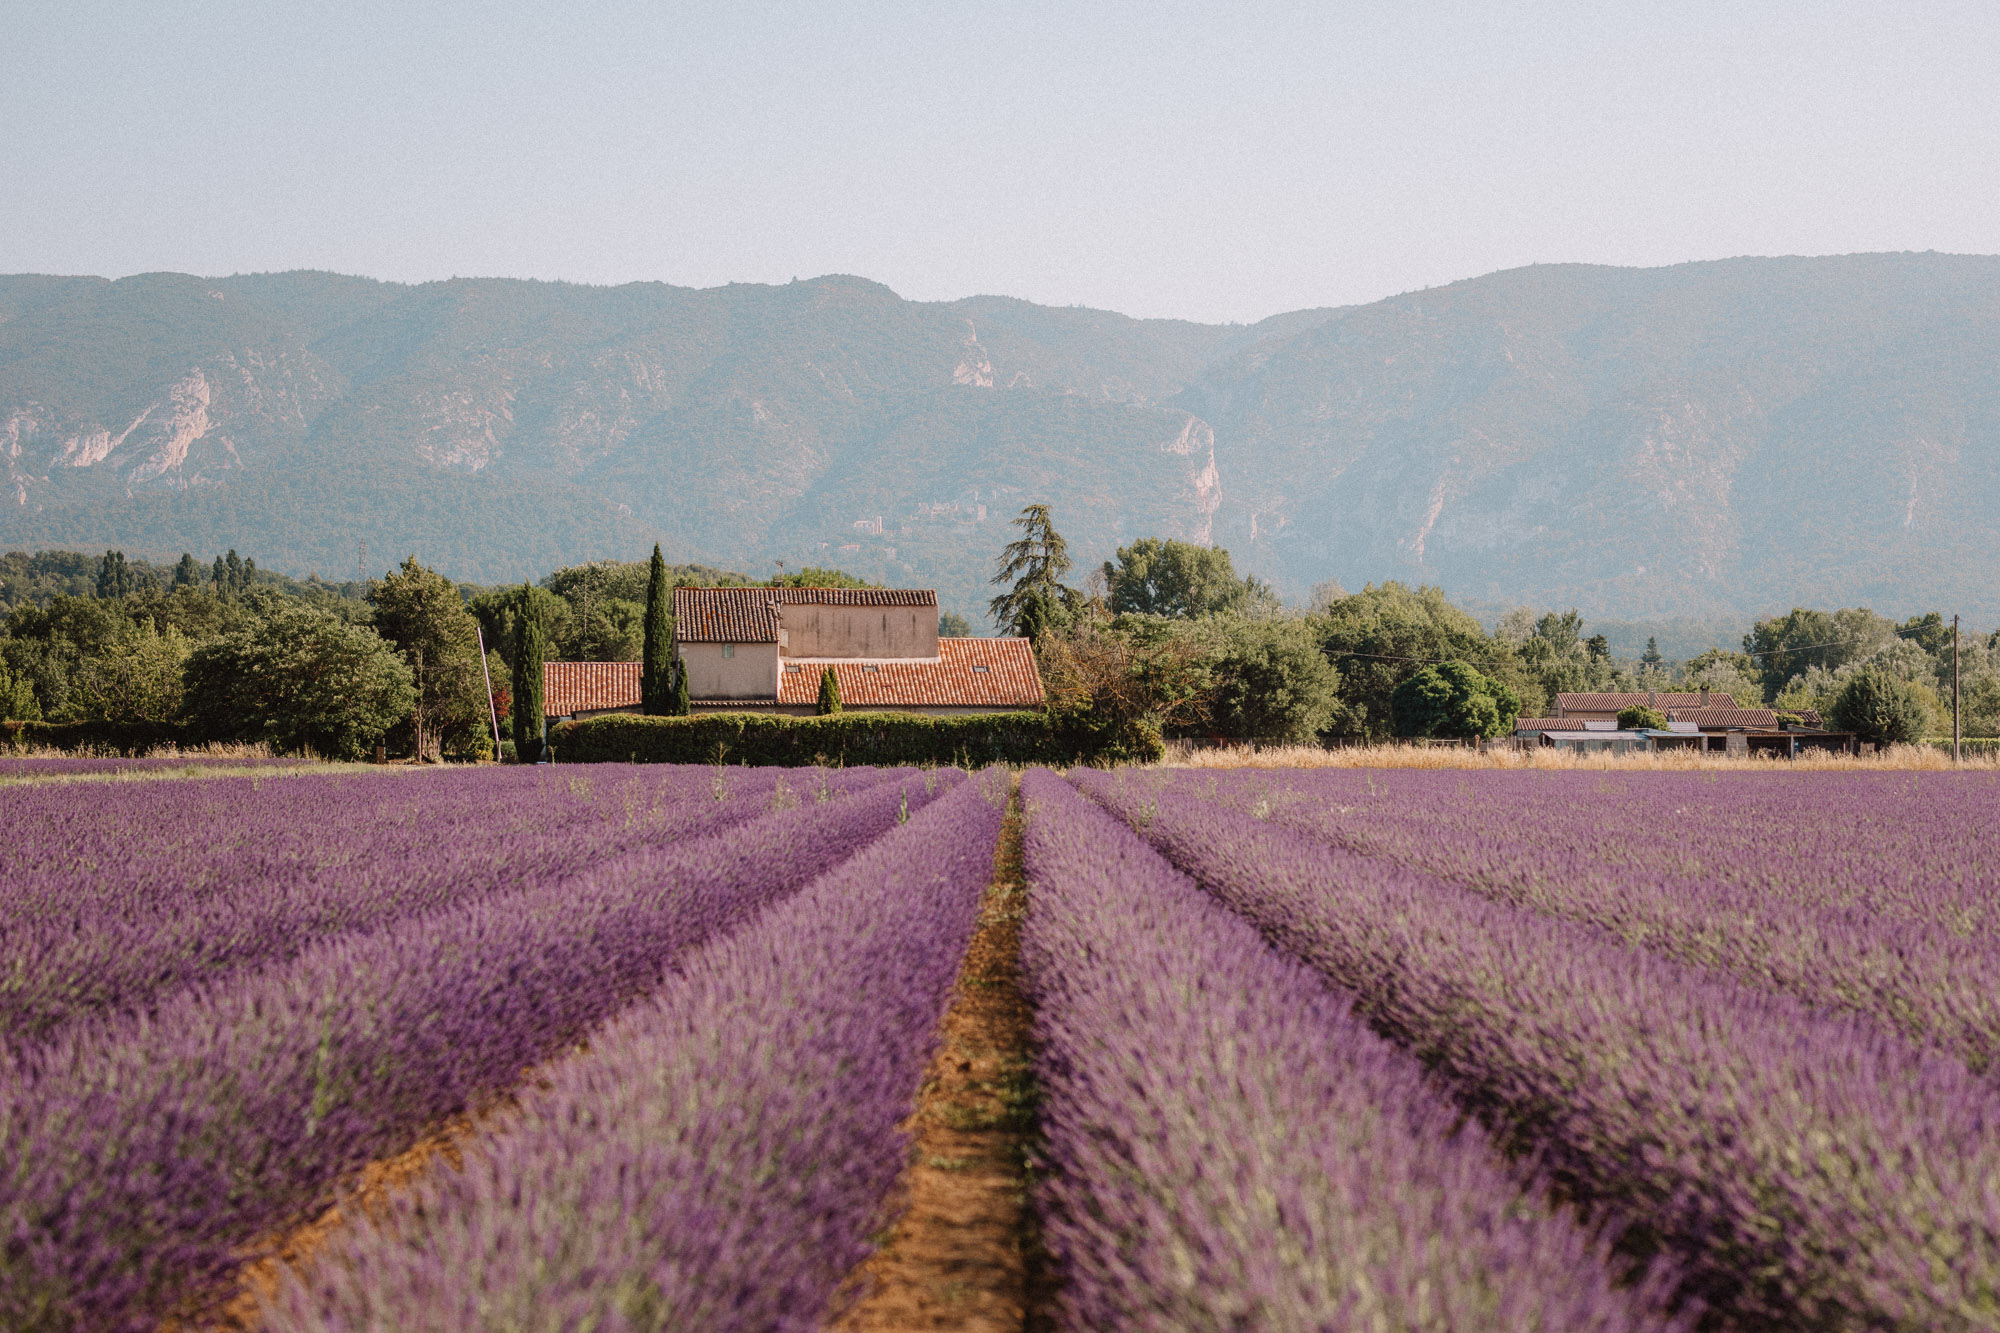 Lavender fields in Provence, South of France